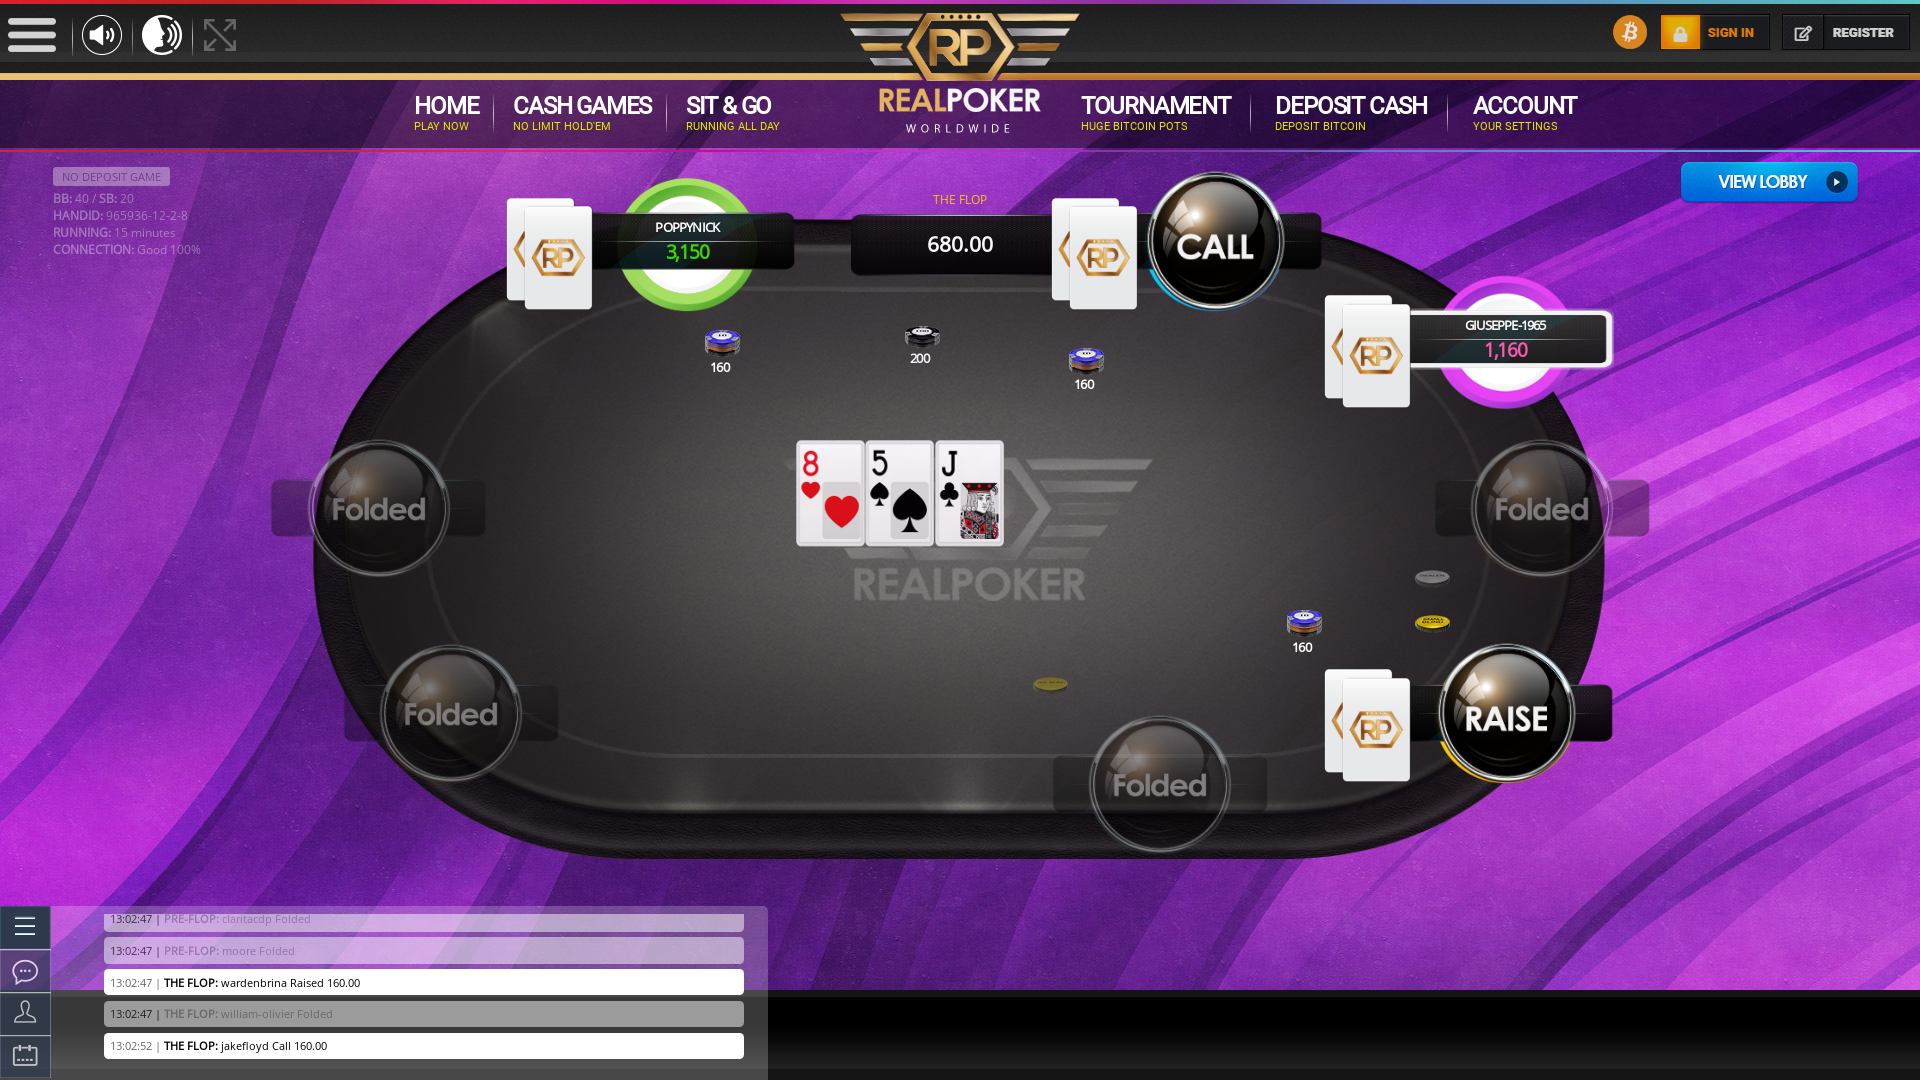 online poker on a 10 player table in the 15th minute match up